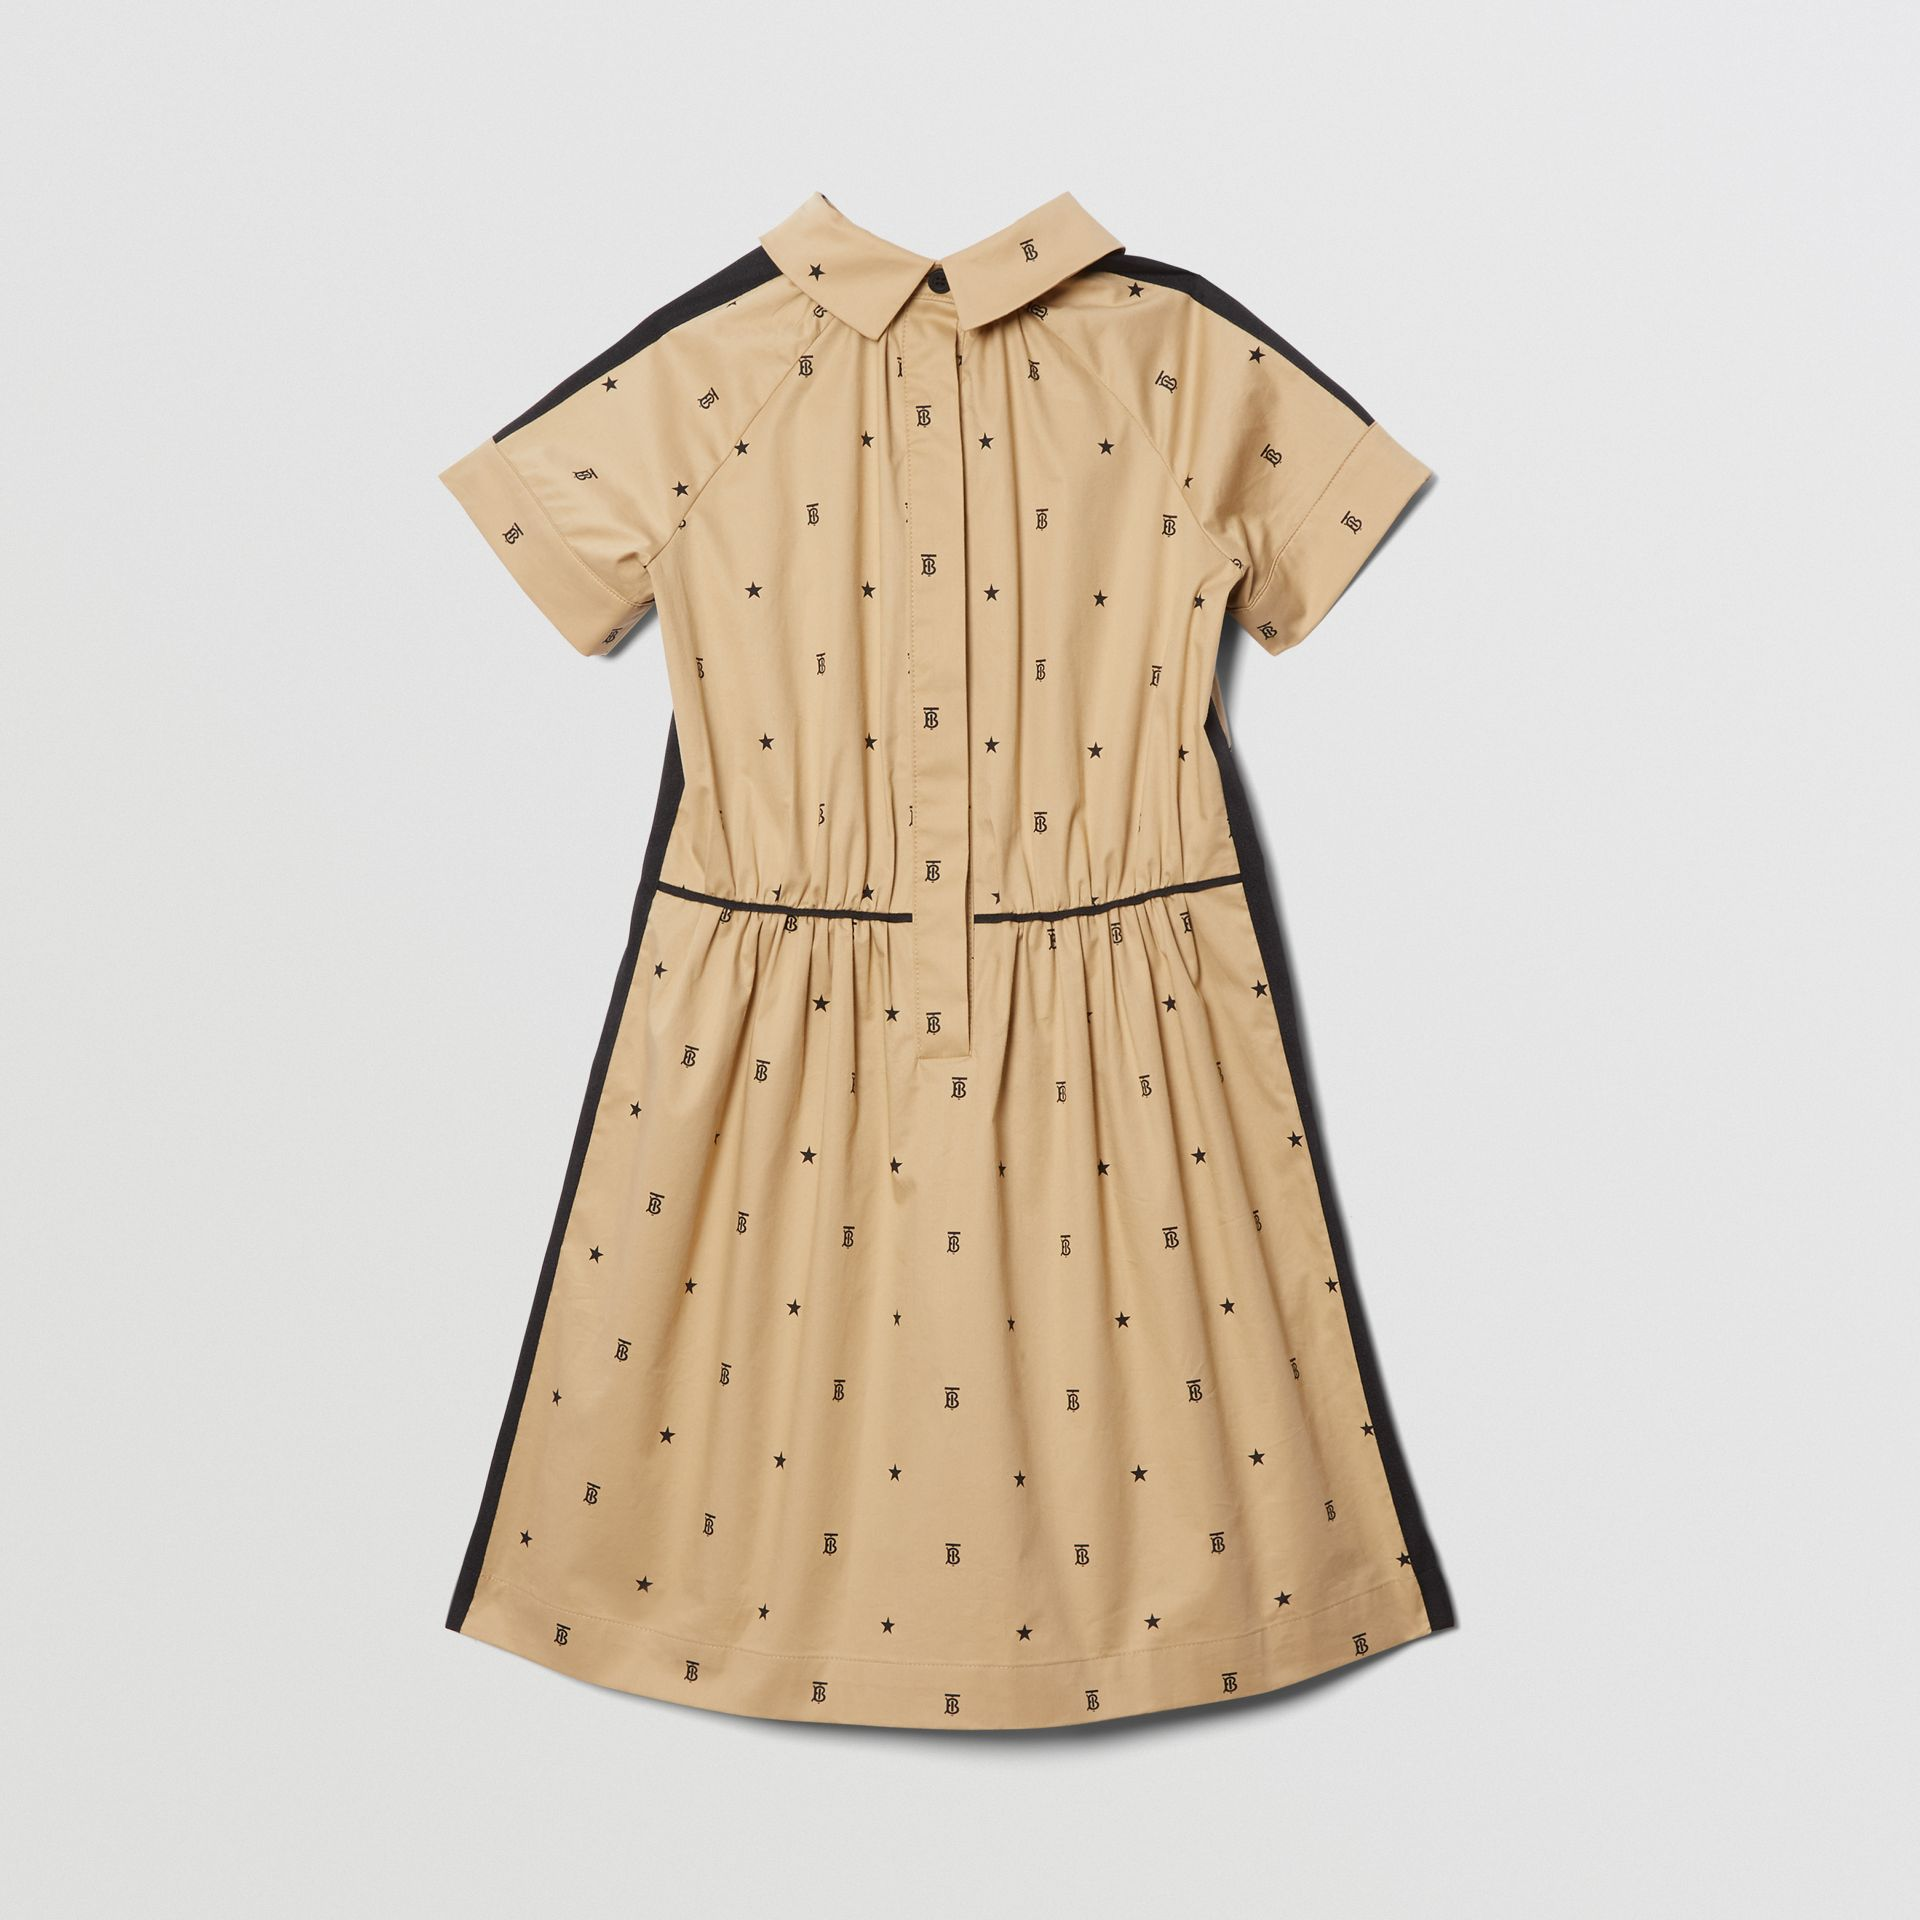 Star and Monogram Motif Stretch Cotton Dress in Sand | Burberry - gallery image 2